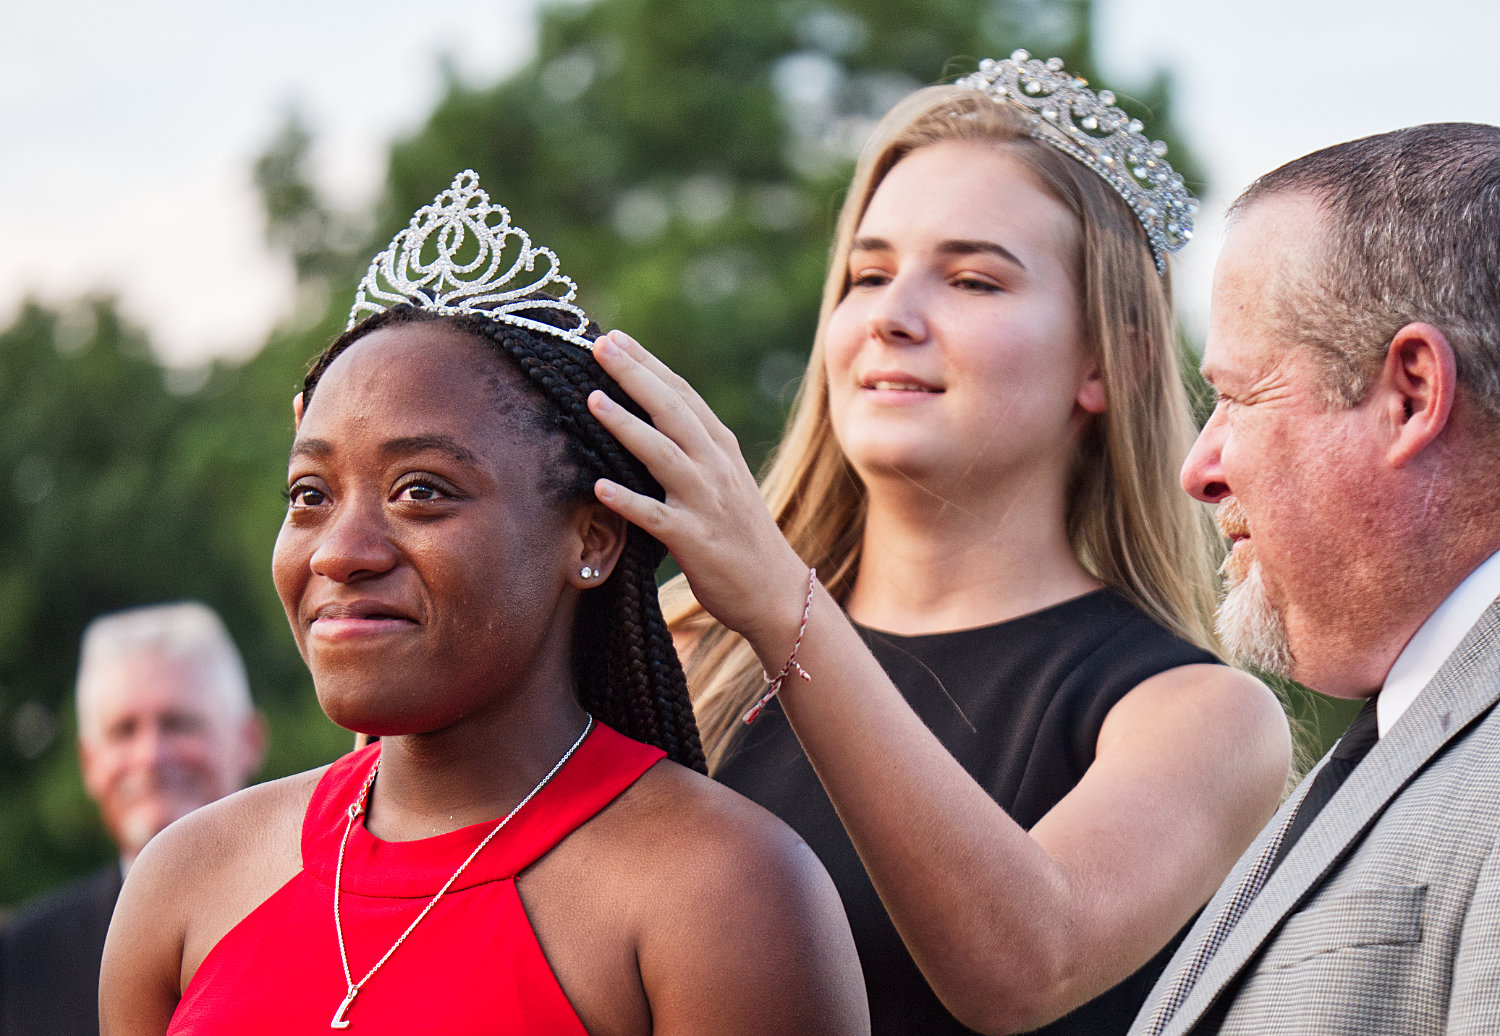 Lovely Wright is crowned Minoela 2019 homecoming queen by last year's queen, Lena Hughes, as Wright's escort, youth Pastor Kendall Banks looks on prior to Friday's football game with Farmersville (which the Yellowjackets won handily).